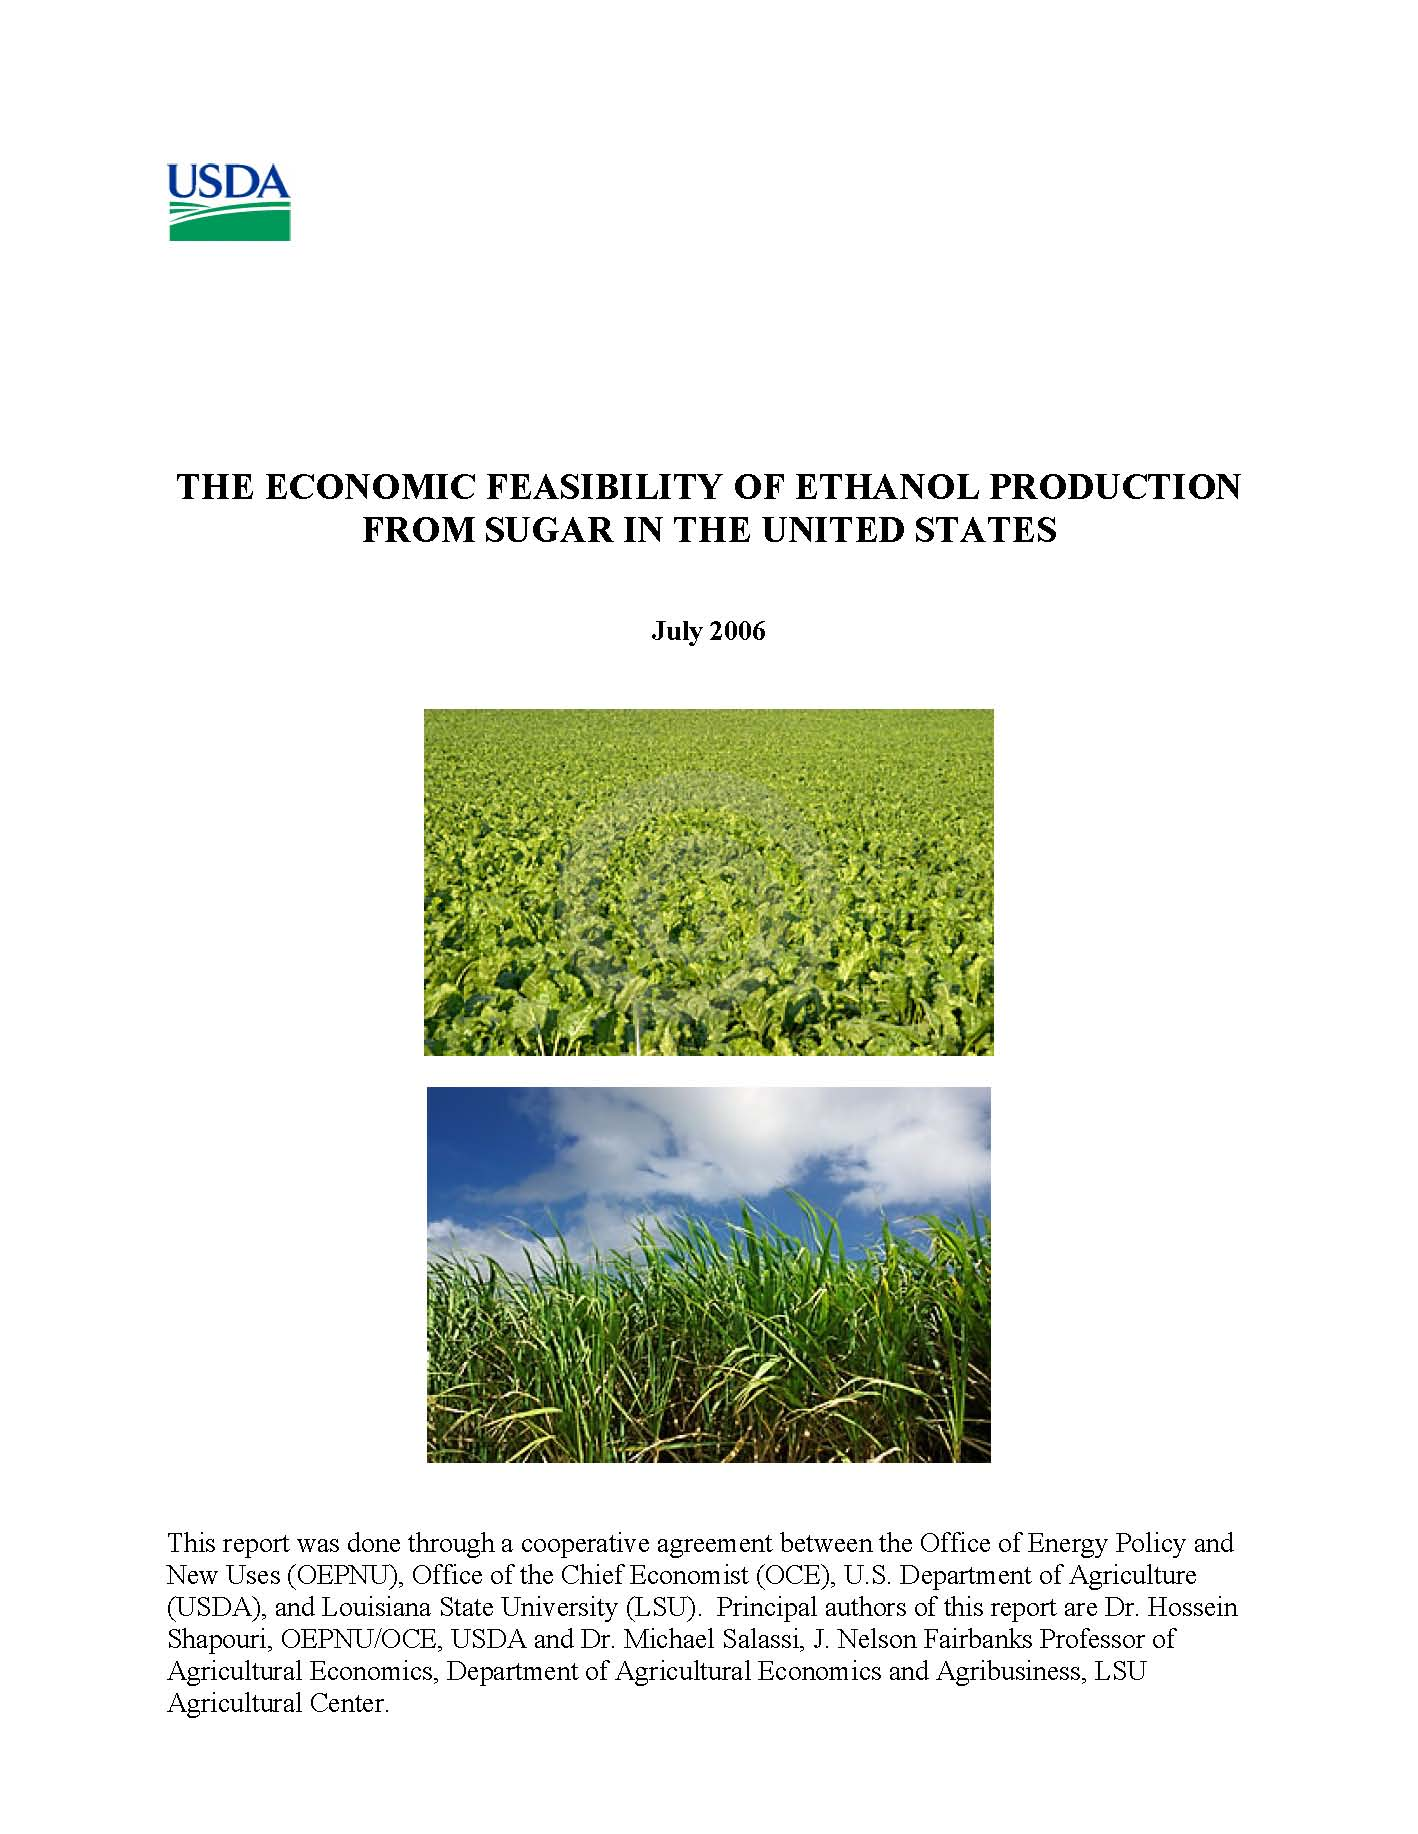 Economic Feasibility of Ethanol Production from Sugar in the United States